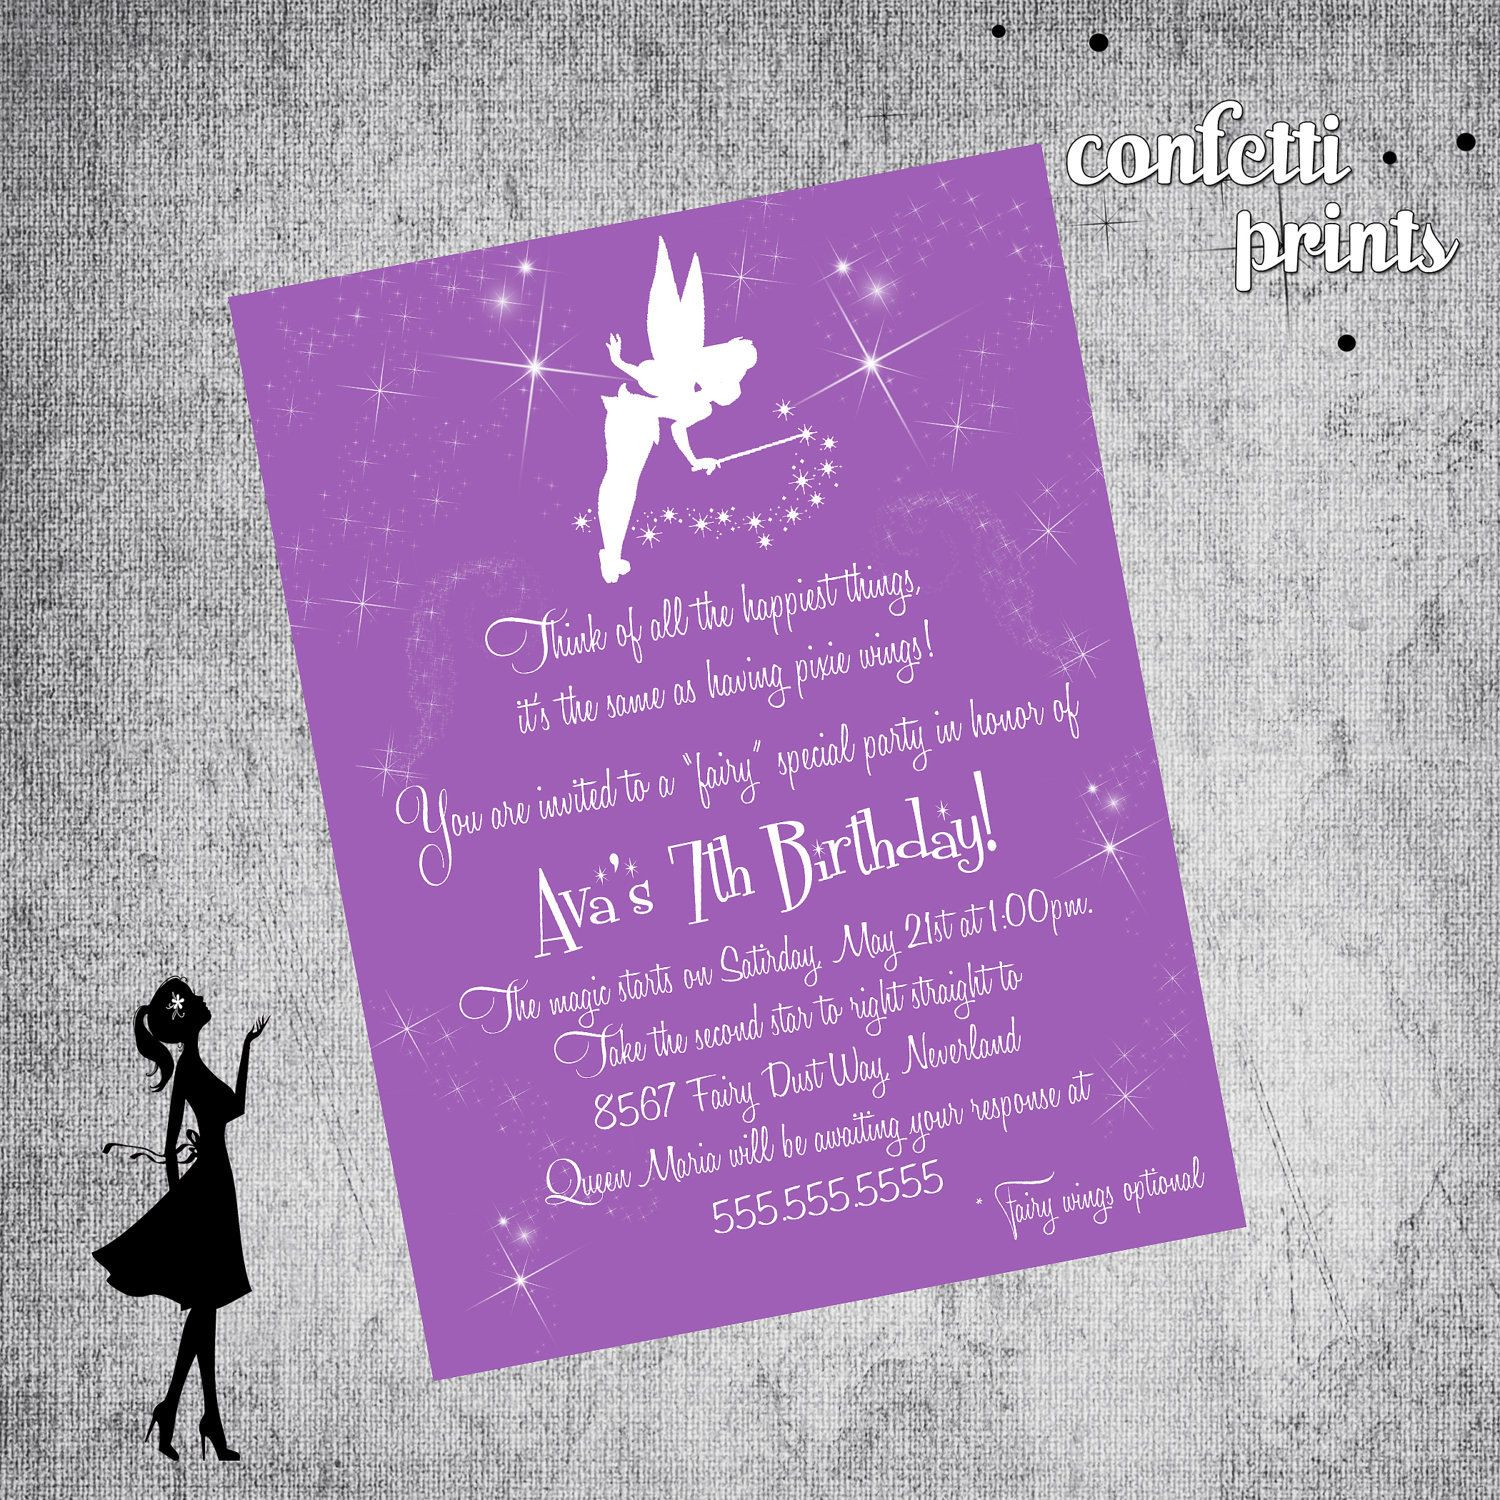 Printable Birthday Invitation TINKERBELL by confettiprintables 1200